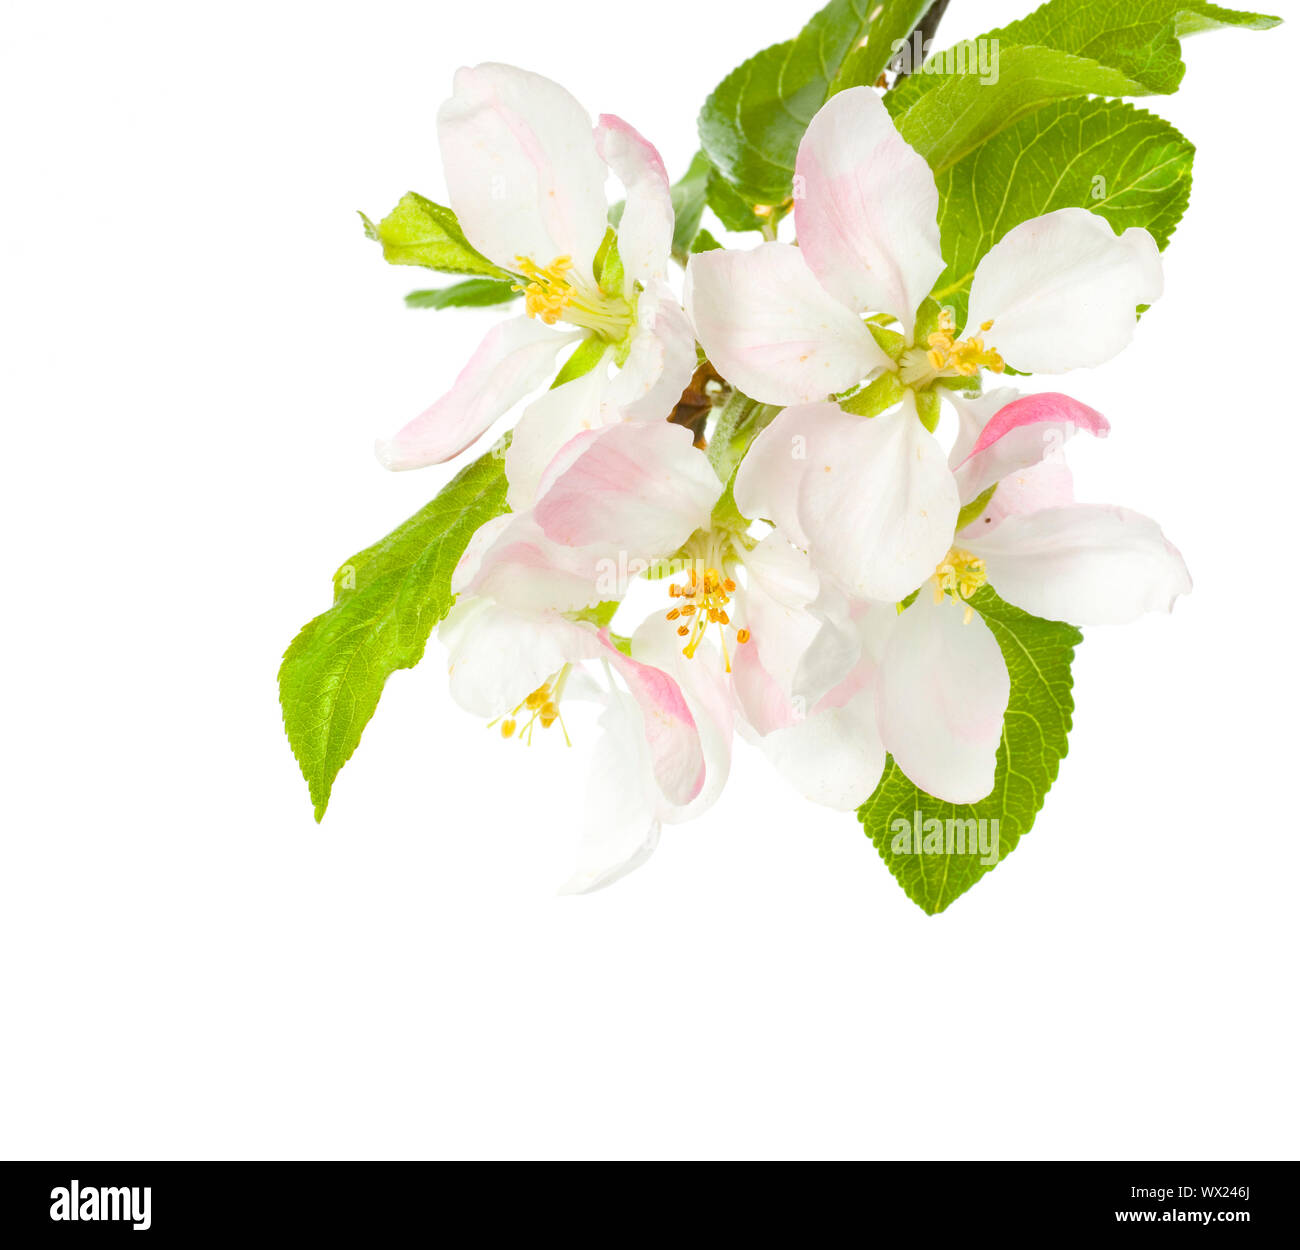 Apple Blossom Isolated Over White Stock Photo